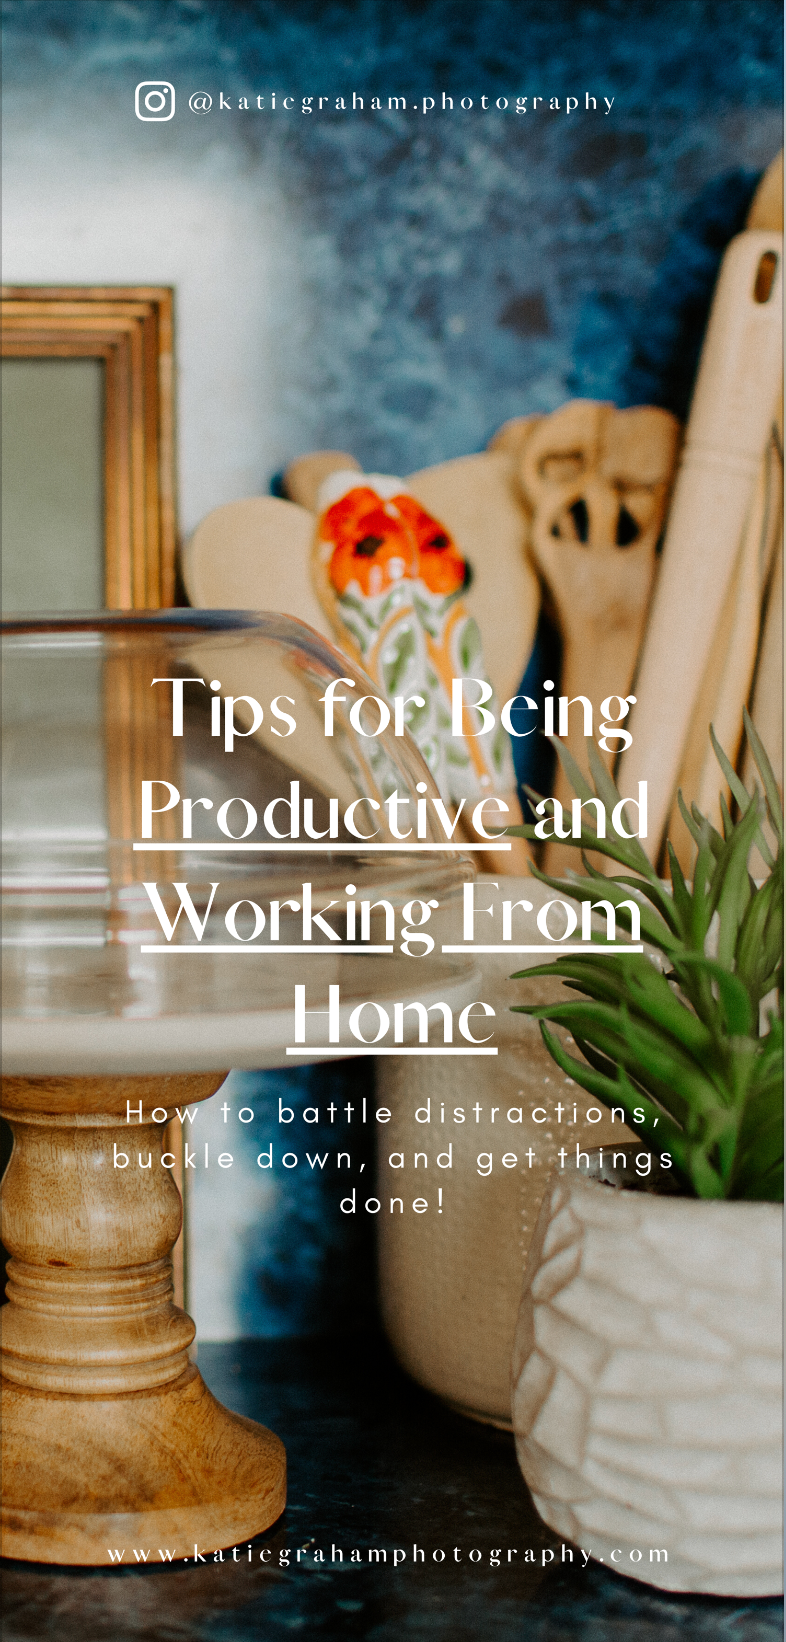 Tips for Being Productive and Working from Home